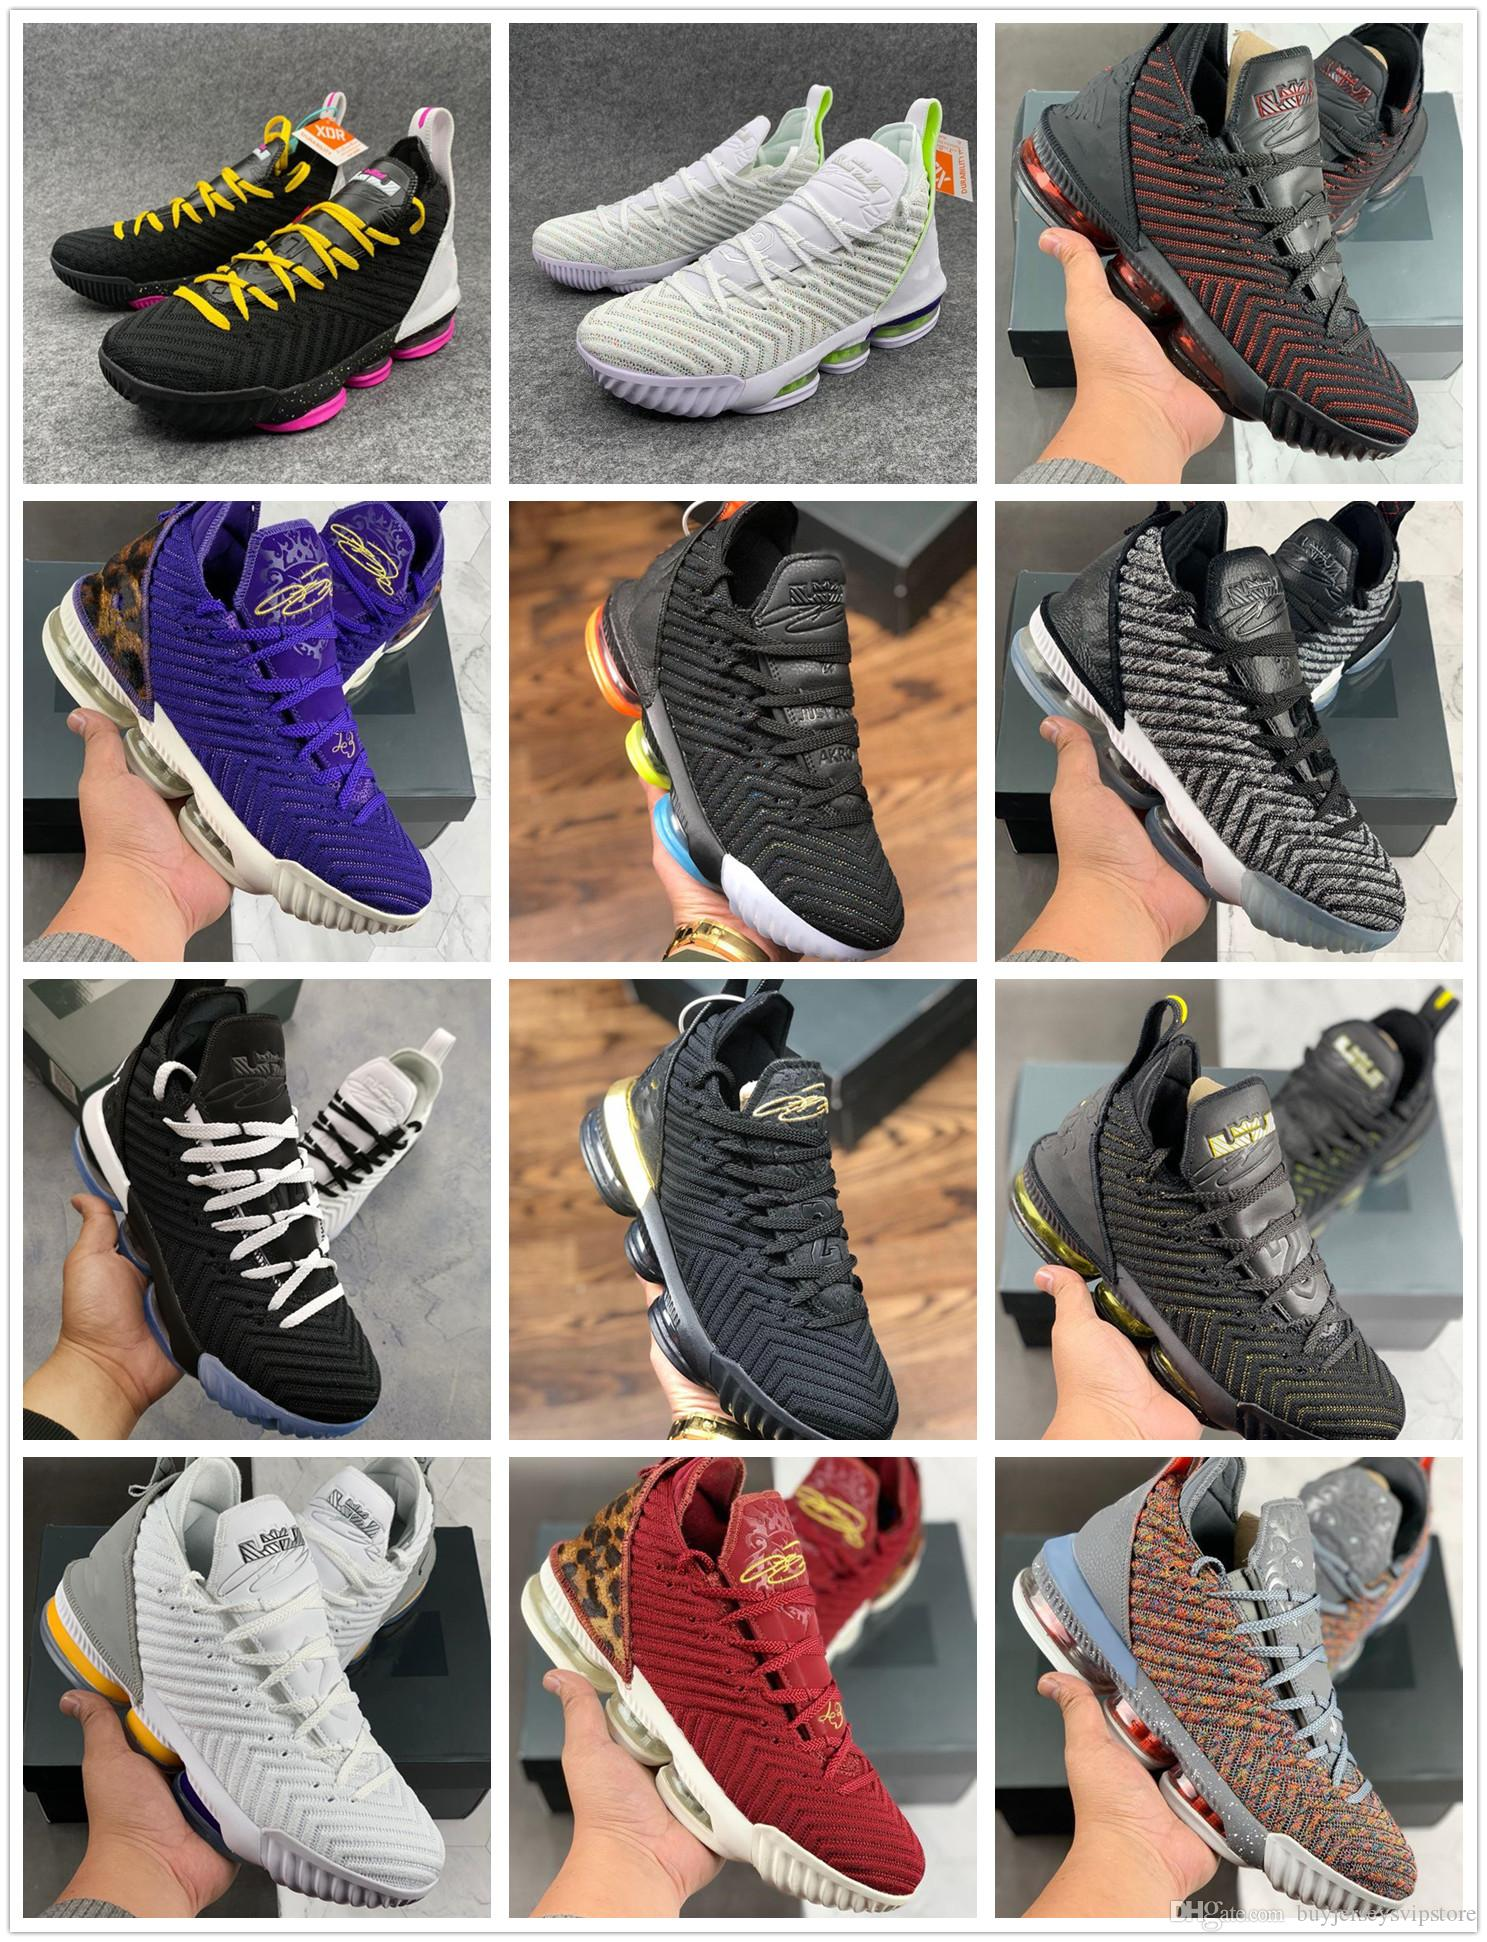 separation shoes 64b53 abaa1 2019 New Release Lebron 16 Equality King Court Purple I Promise King Fresh  Bred 1 Thru 5 Oreo What The LBJ 15s 7-12